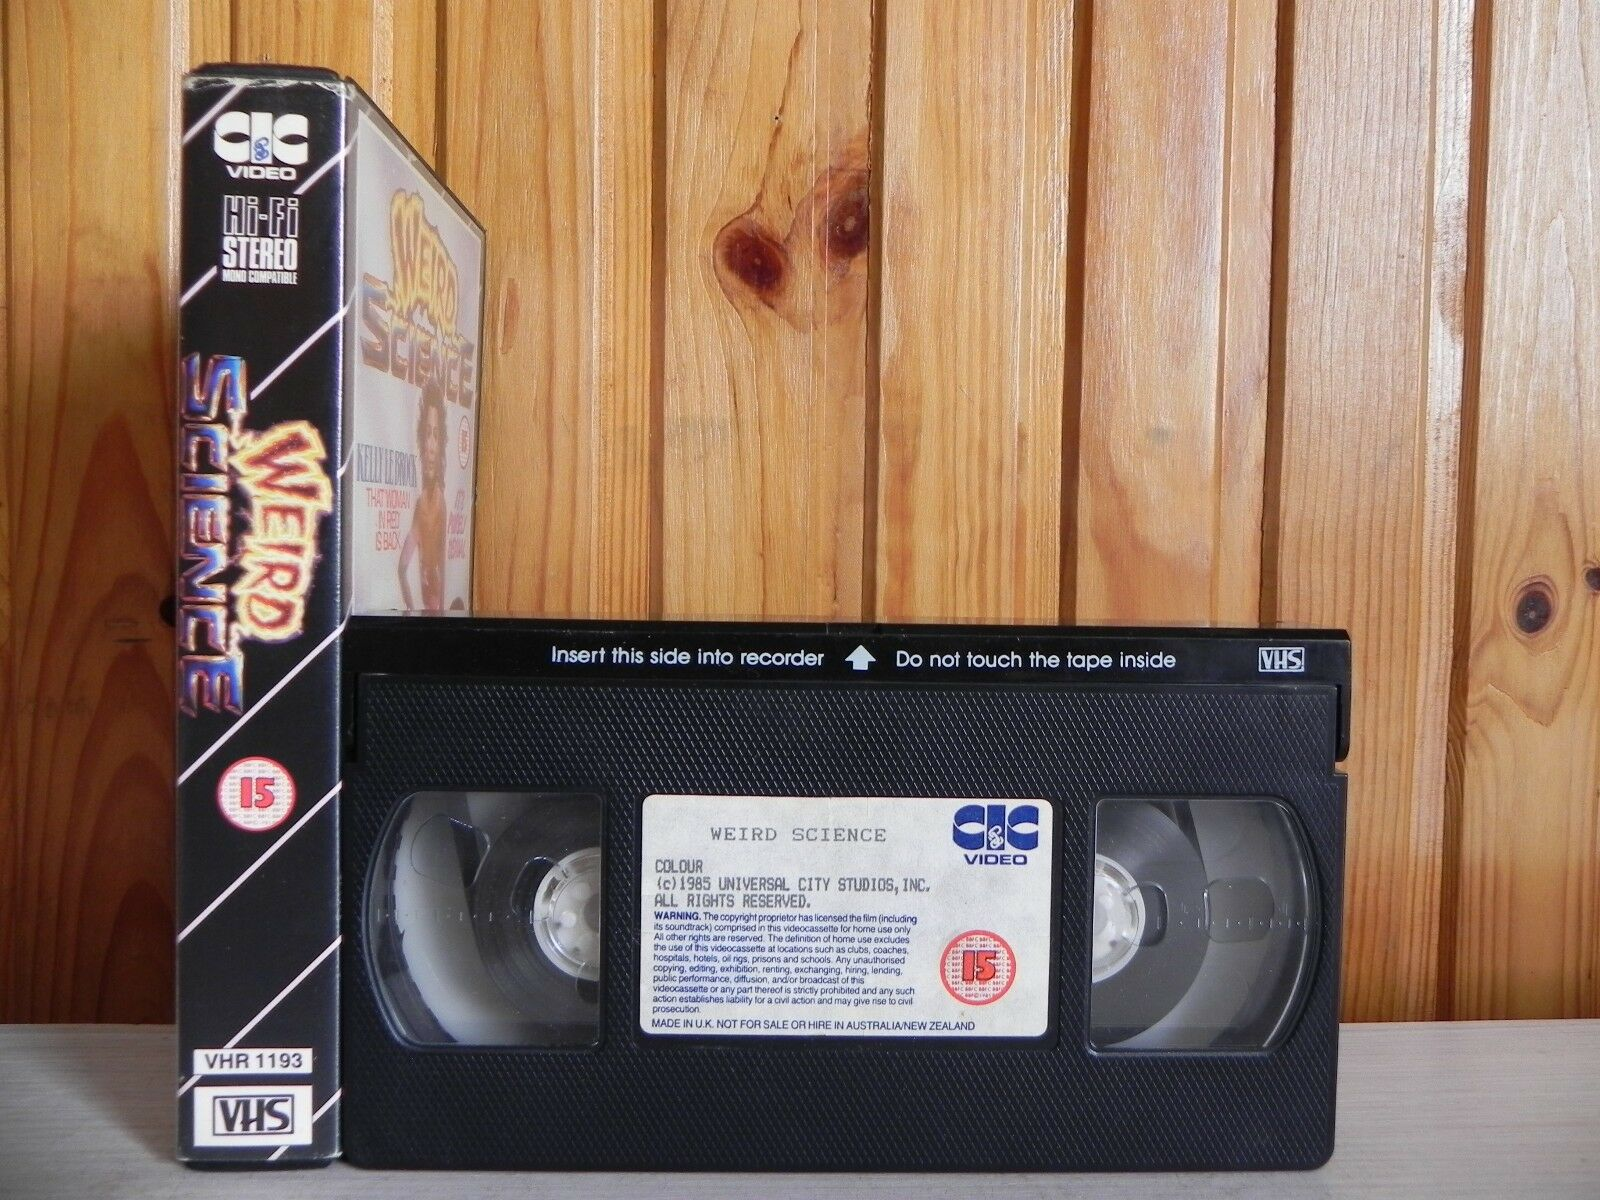 Weird Science - Early Release CIC Video - 1193 - Sci-Fi - Kelly Le Brock - VHS